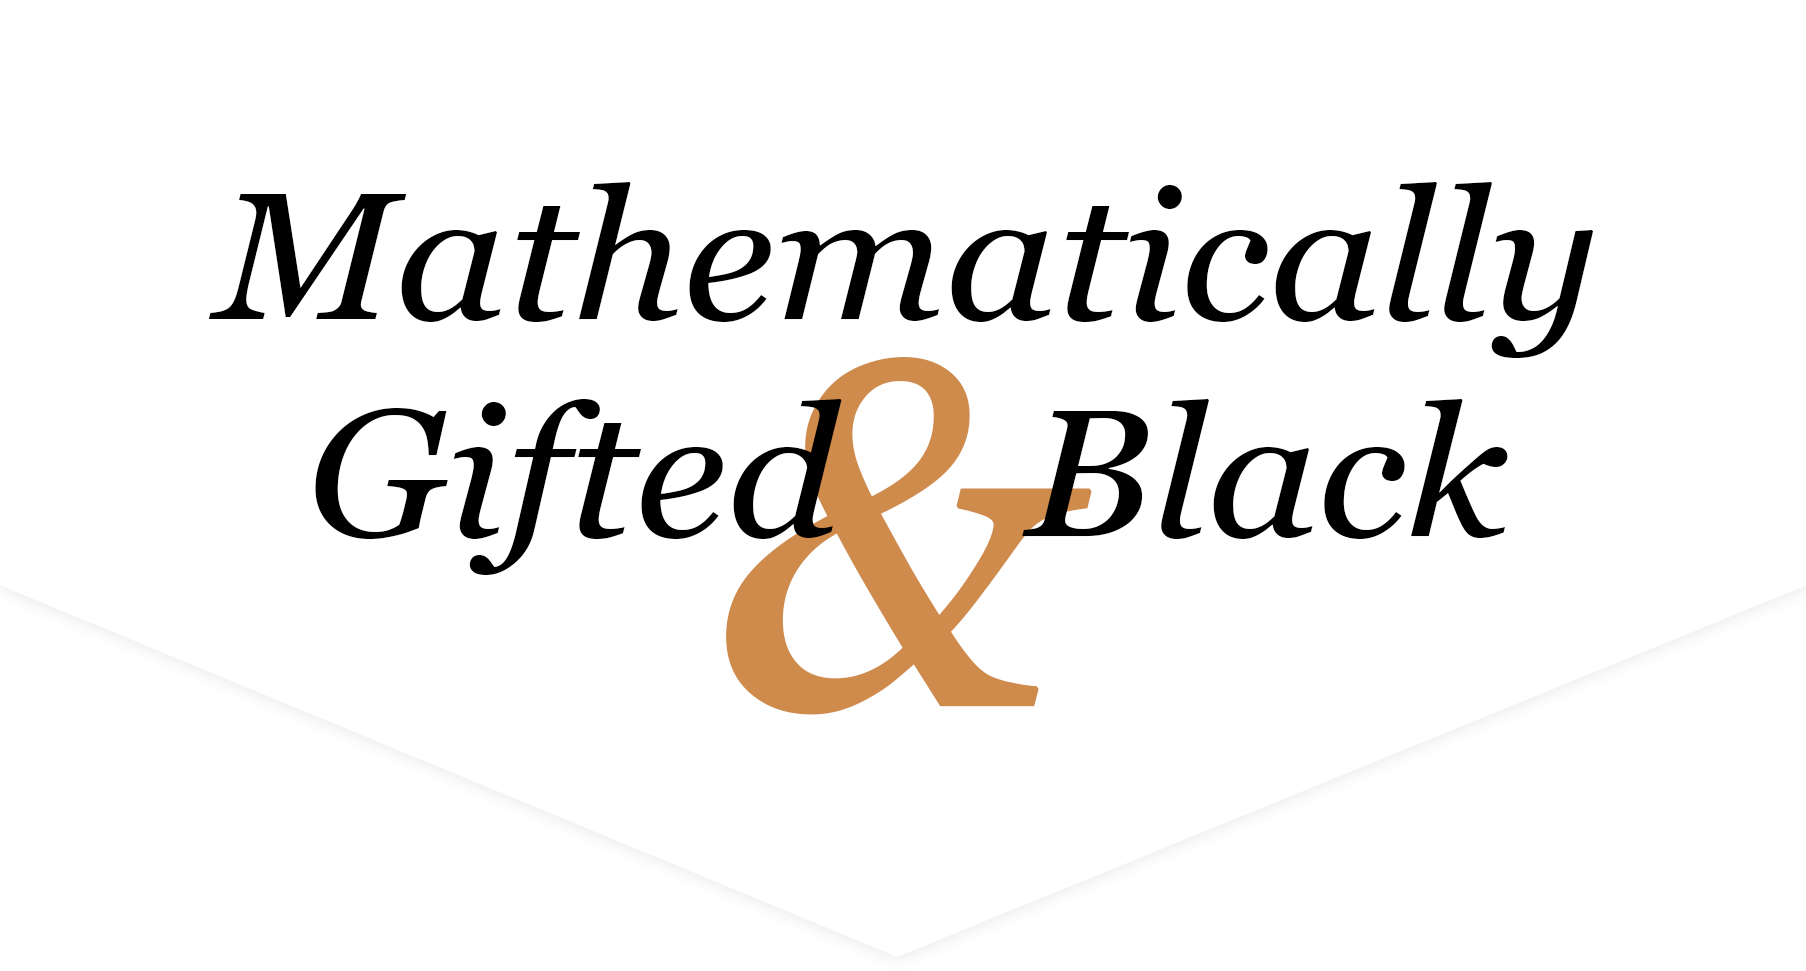 Mathematically Gifted & Black - Homepage